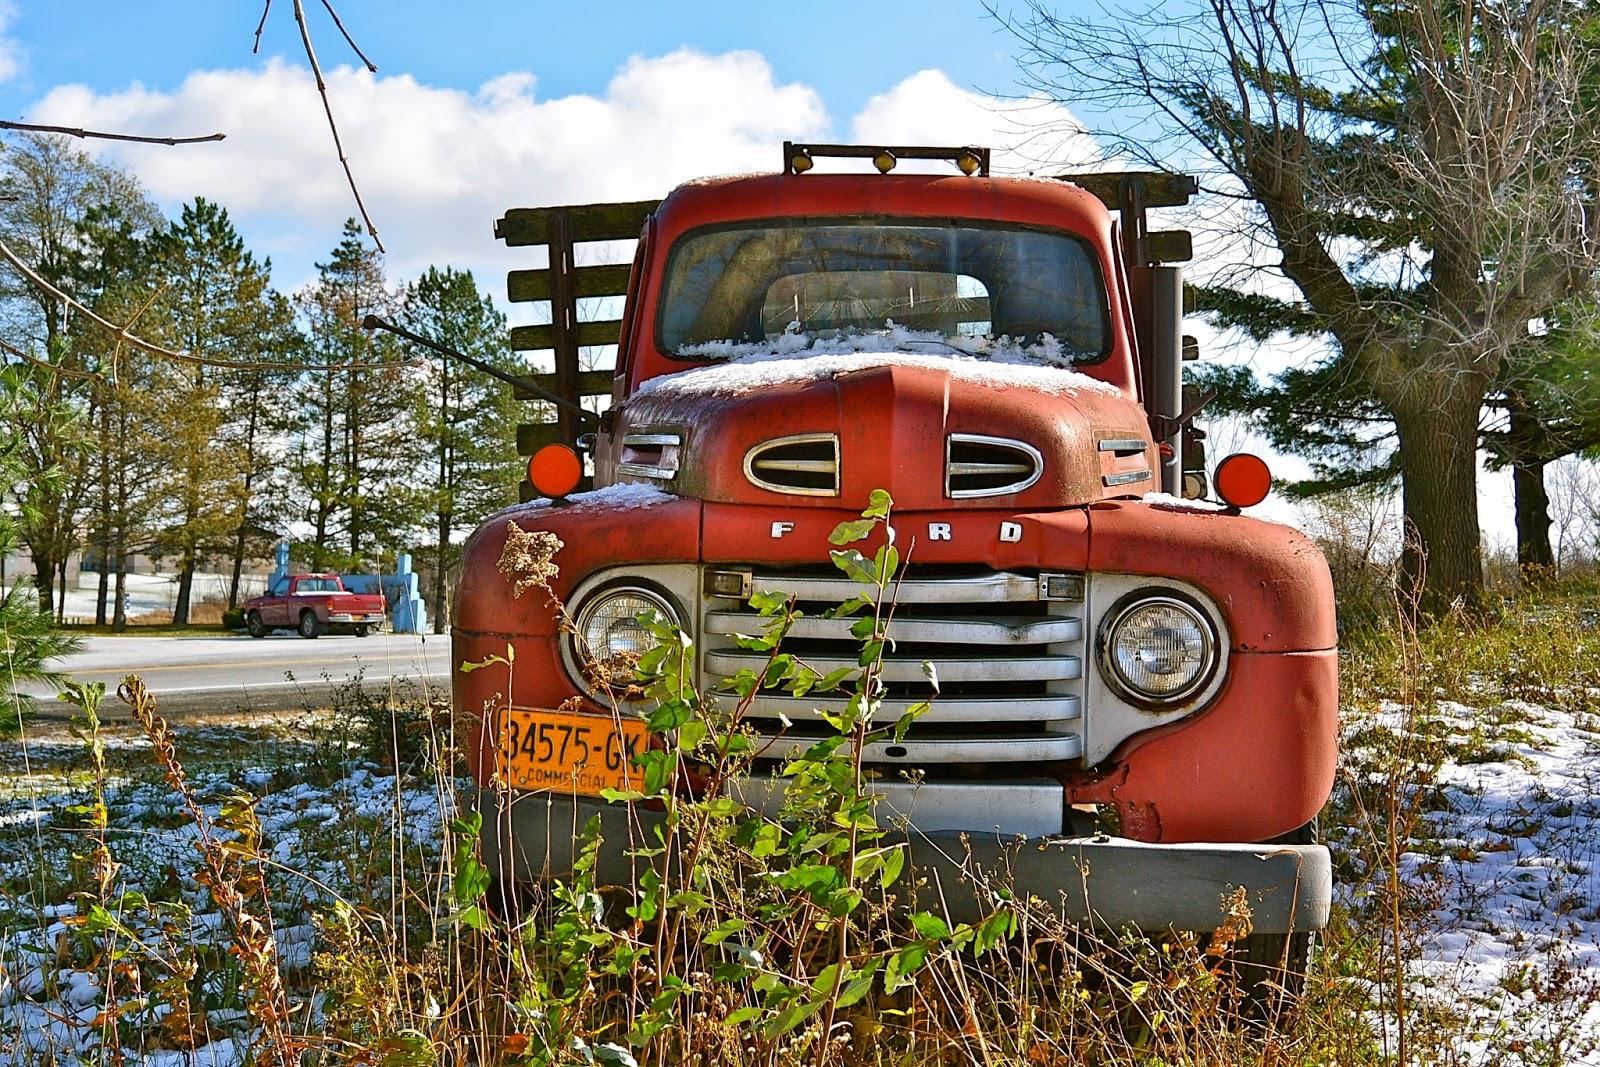 48 Or 49 Ford F5 Tom The Backroads Traveller 1948 Grain Truck At First Glance It Appears To Be A Who Knows Do You Three Year Models Appeared Almost Identical However There Are Small Differences In